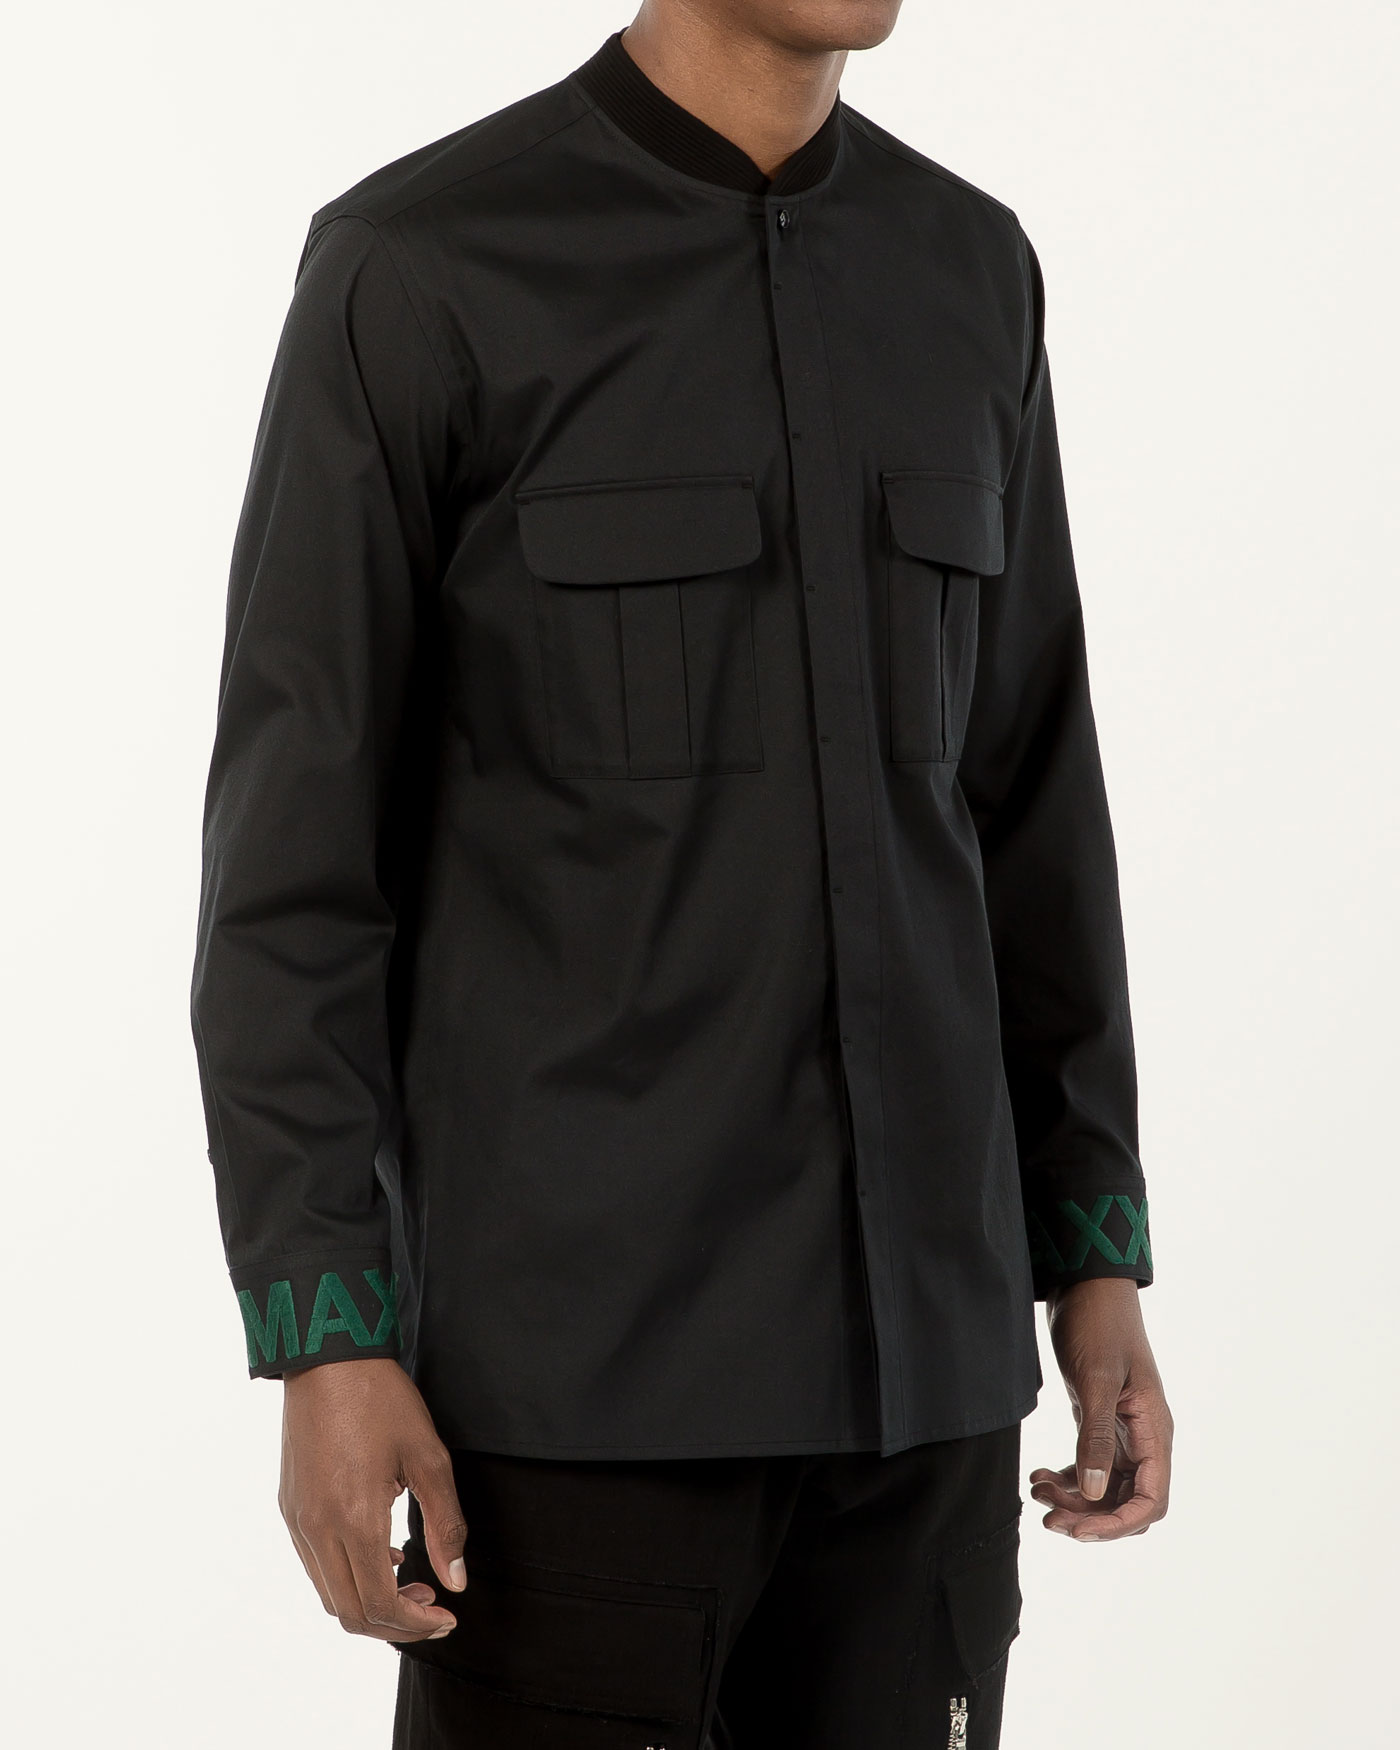 Military Bomber Neck Shirt with Cuff Embroidered Dark Navy